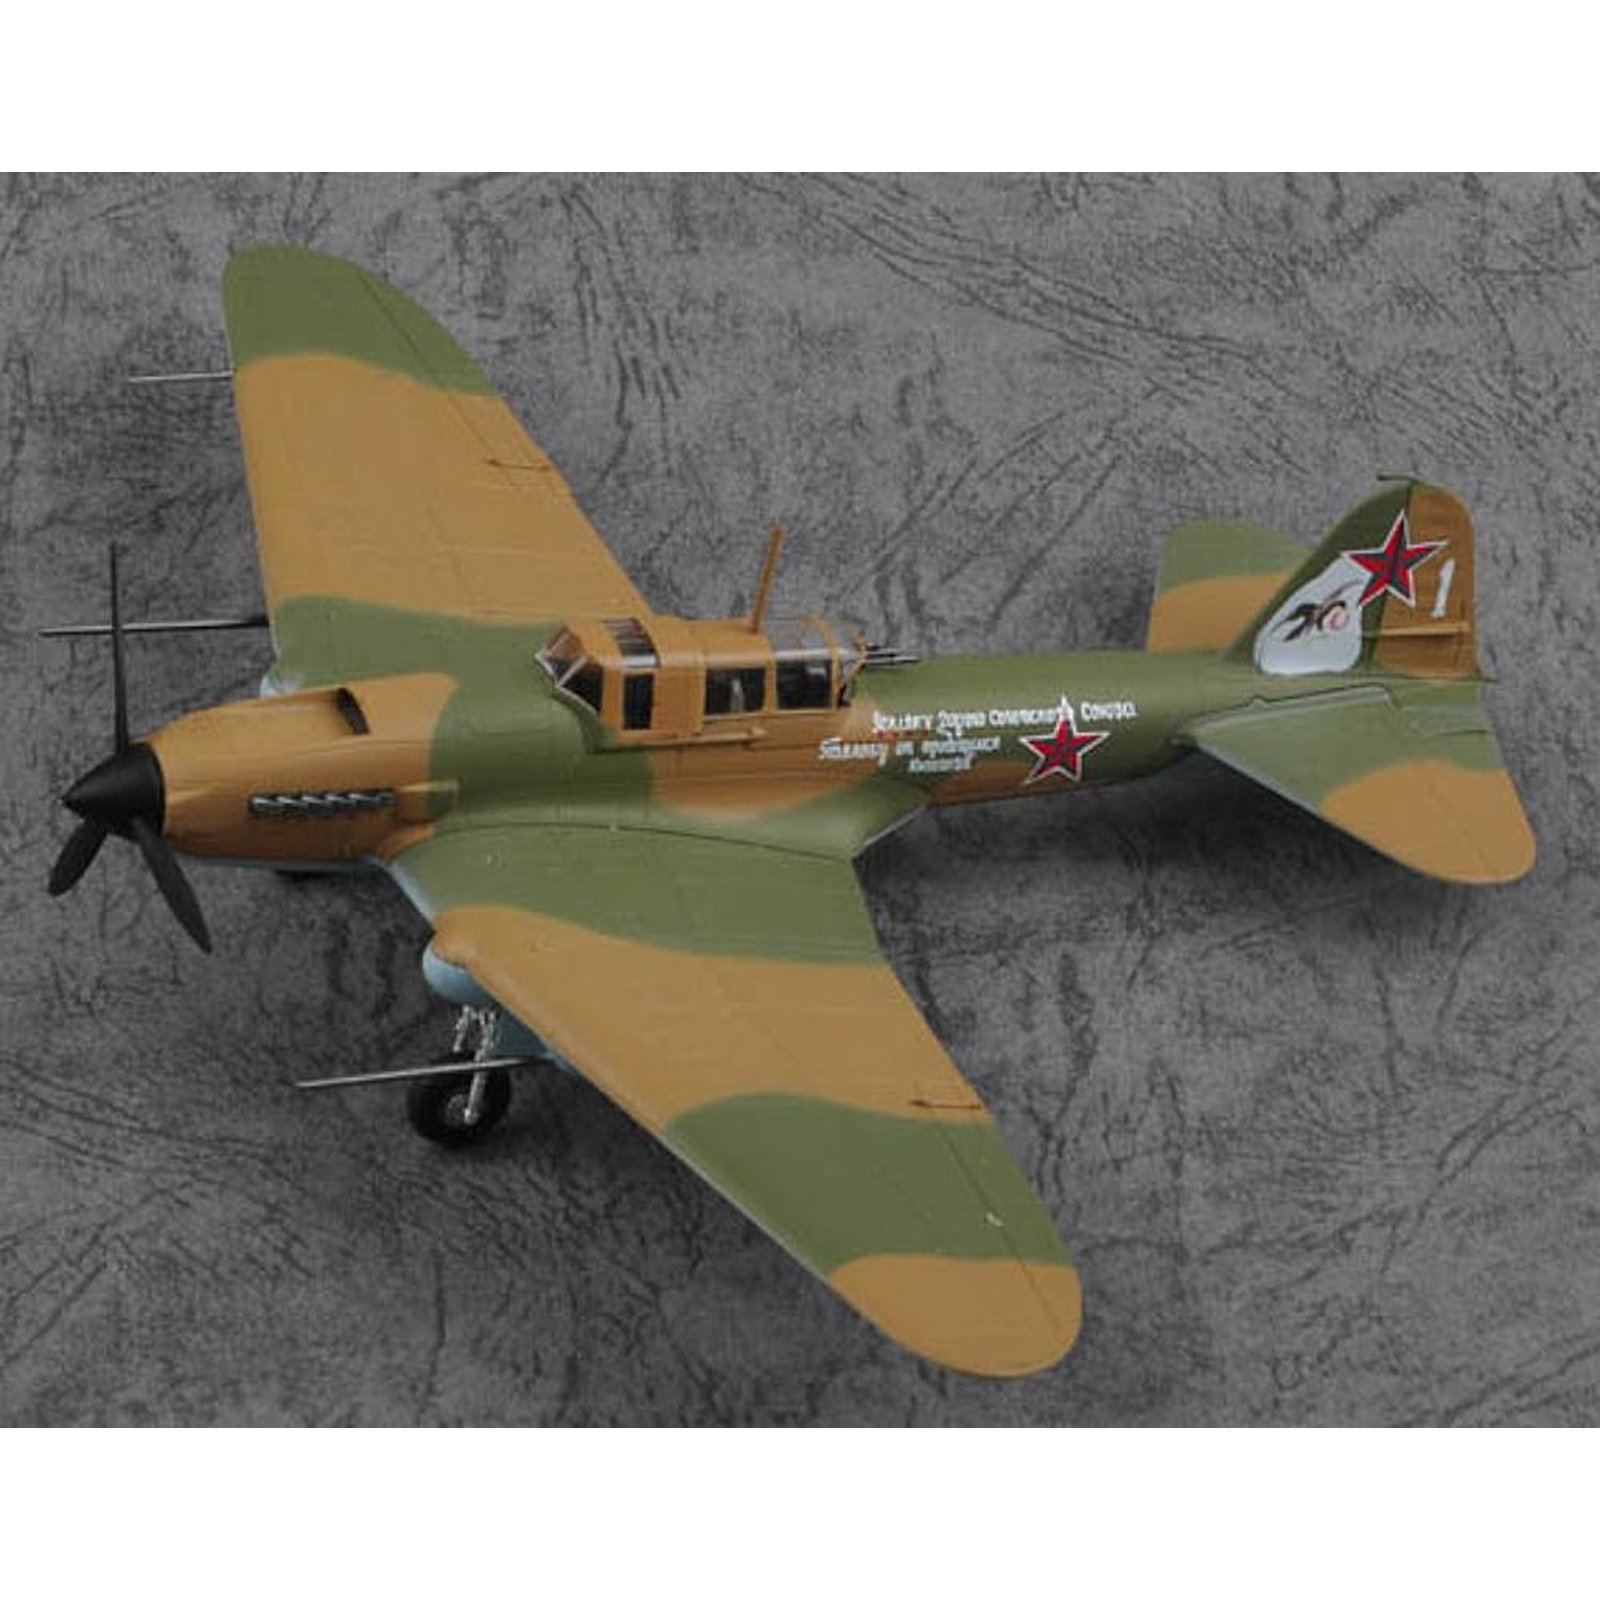 EASY-MODEL 736410 1/72 Iljuschin IL-2M3, Weisse 1